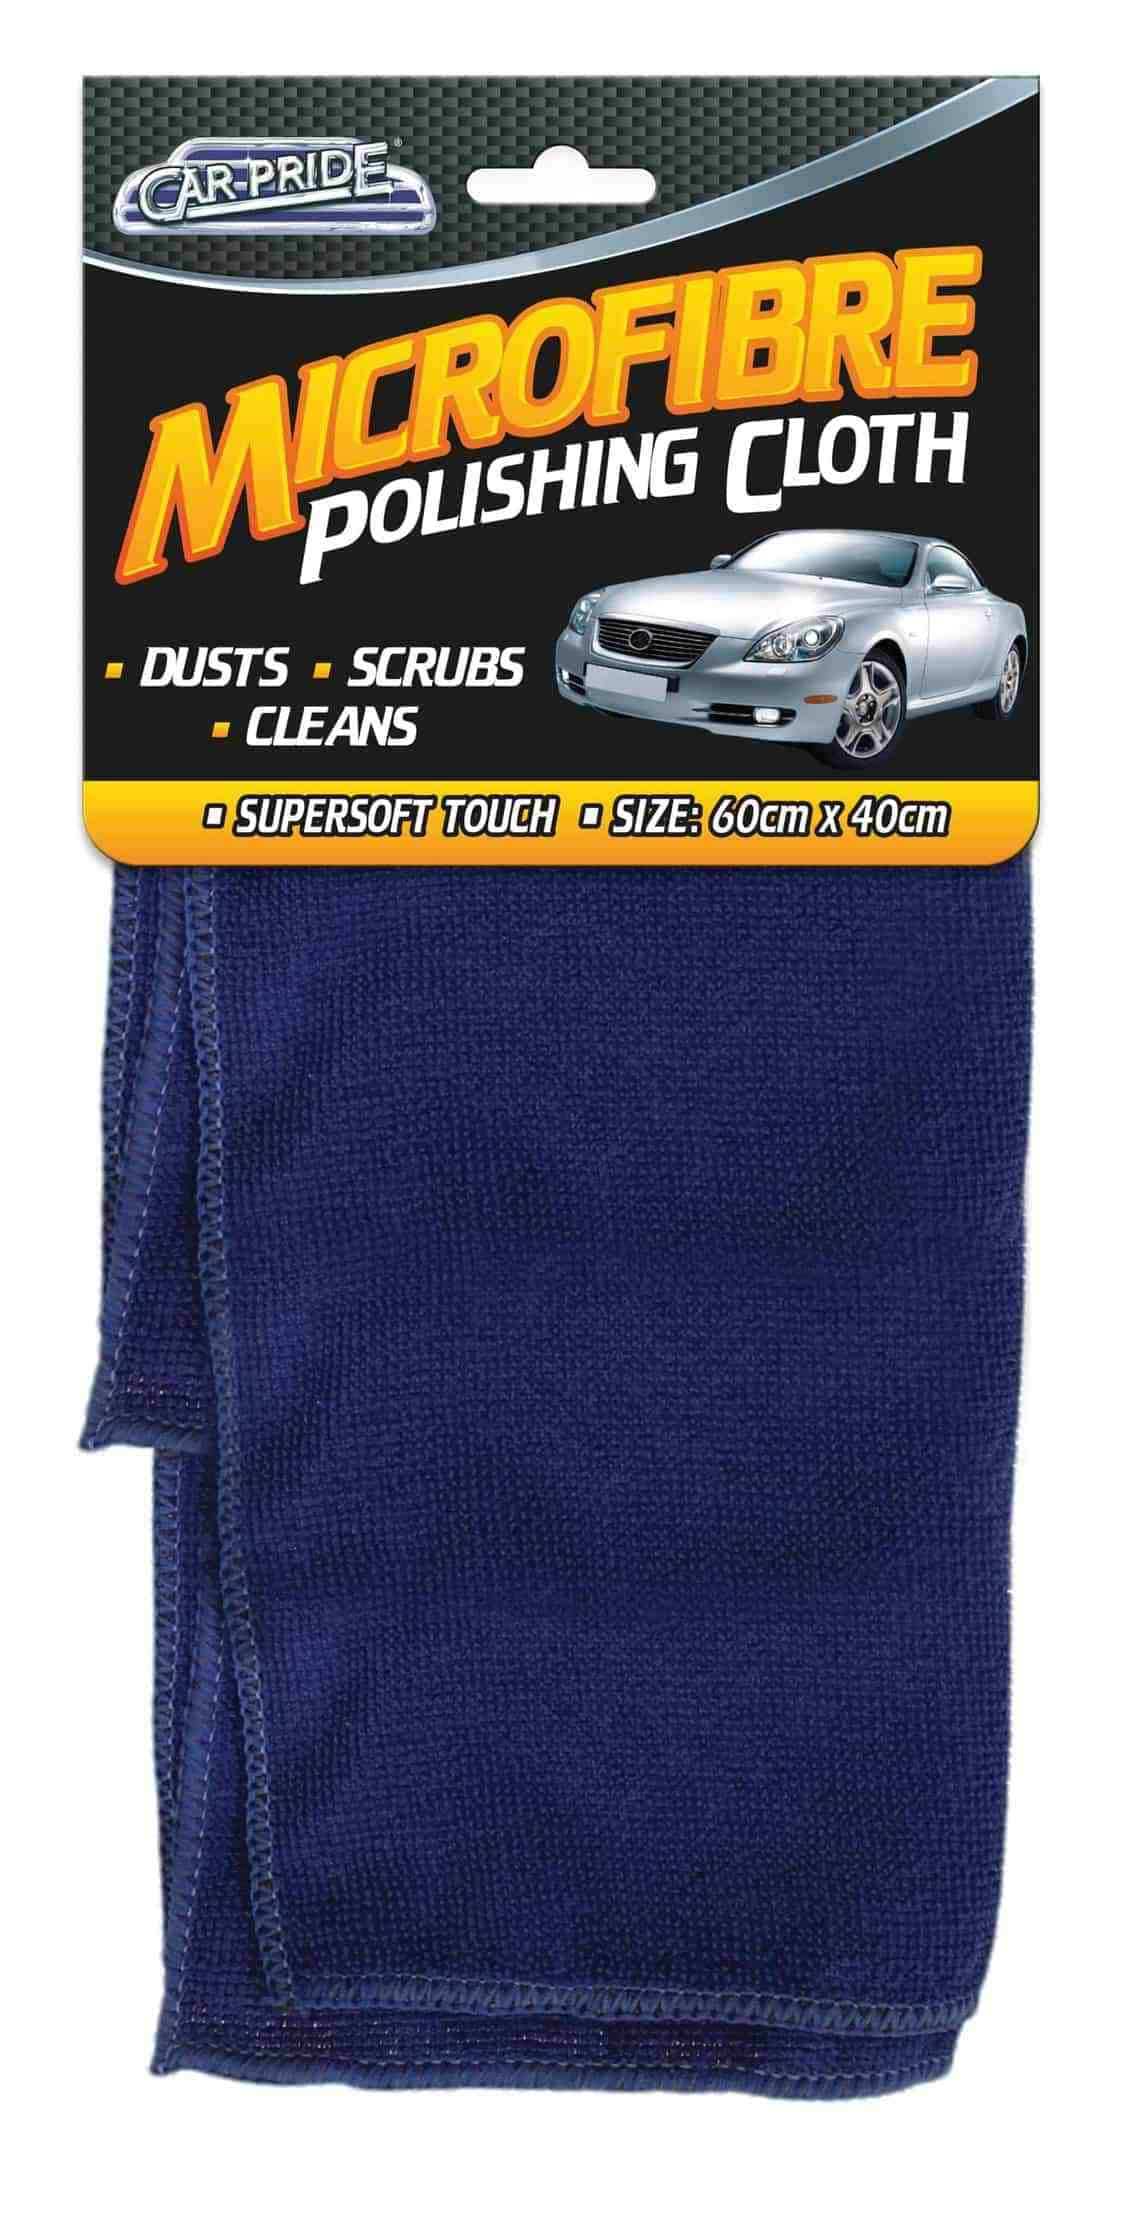 Car Pride Microfibre Polish Cloth